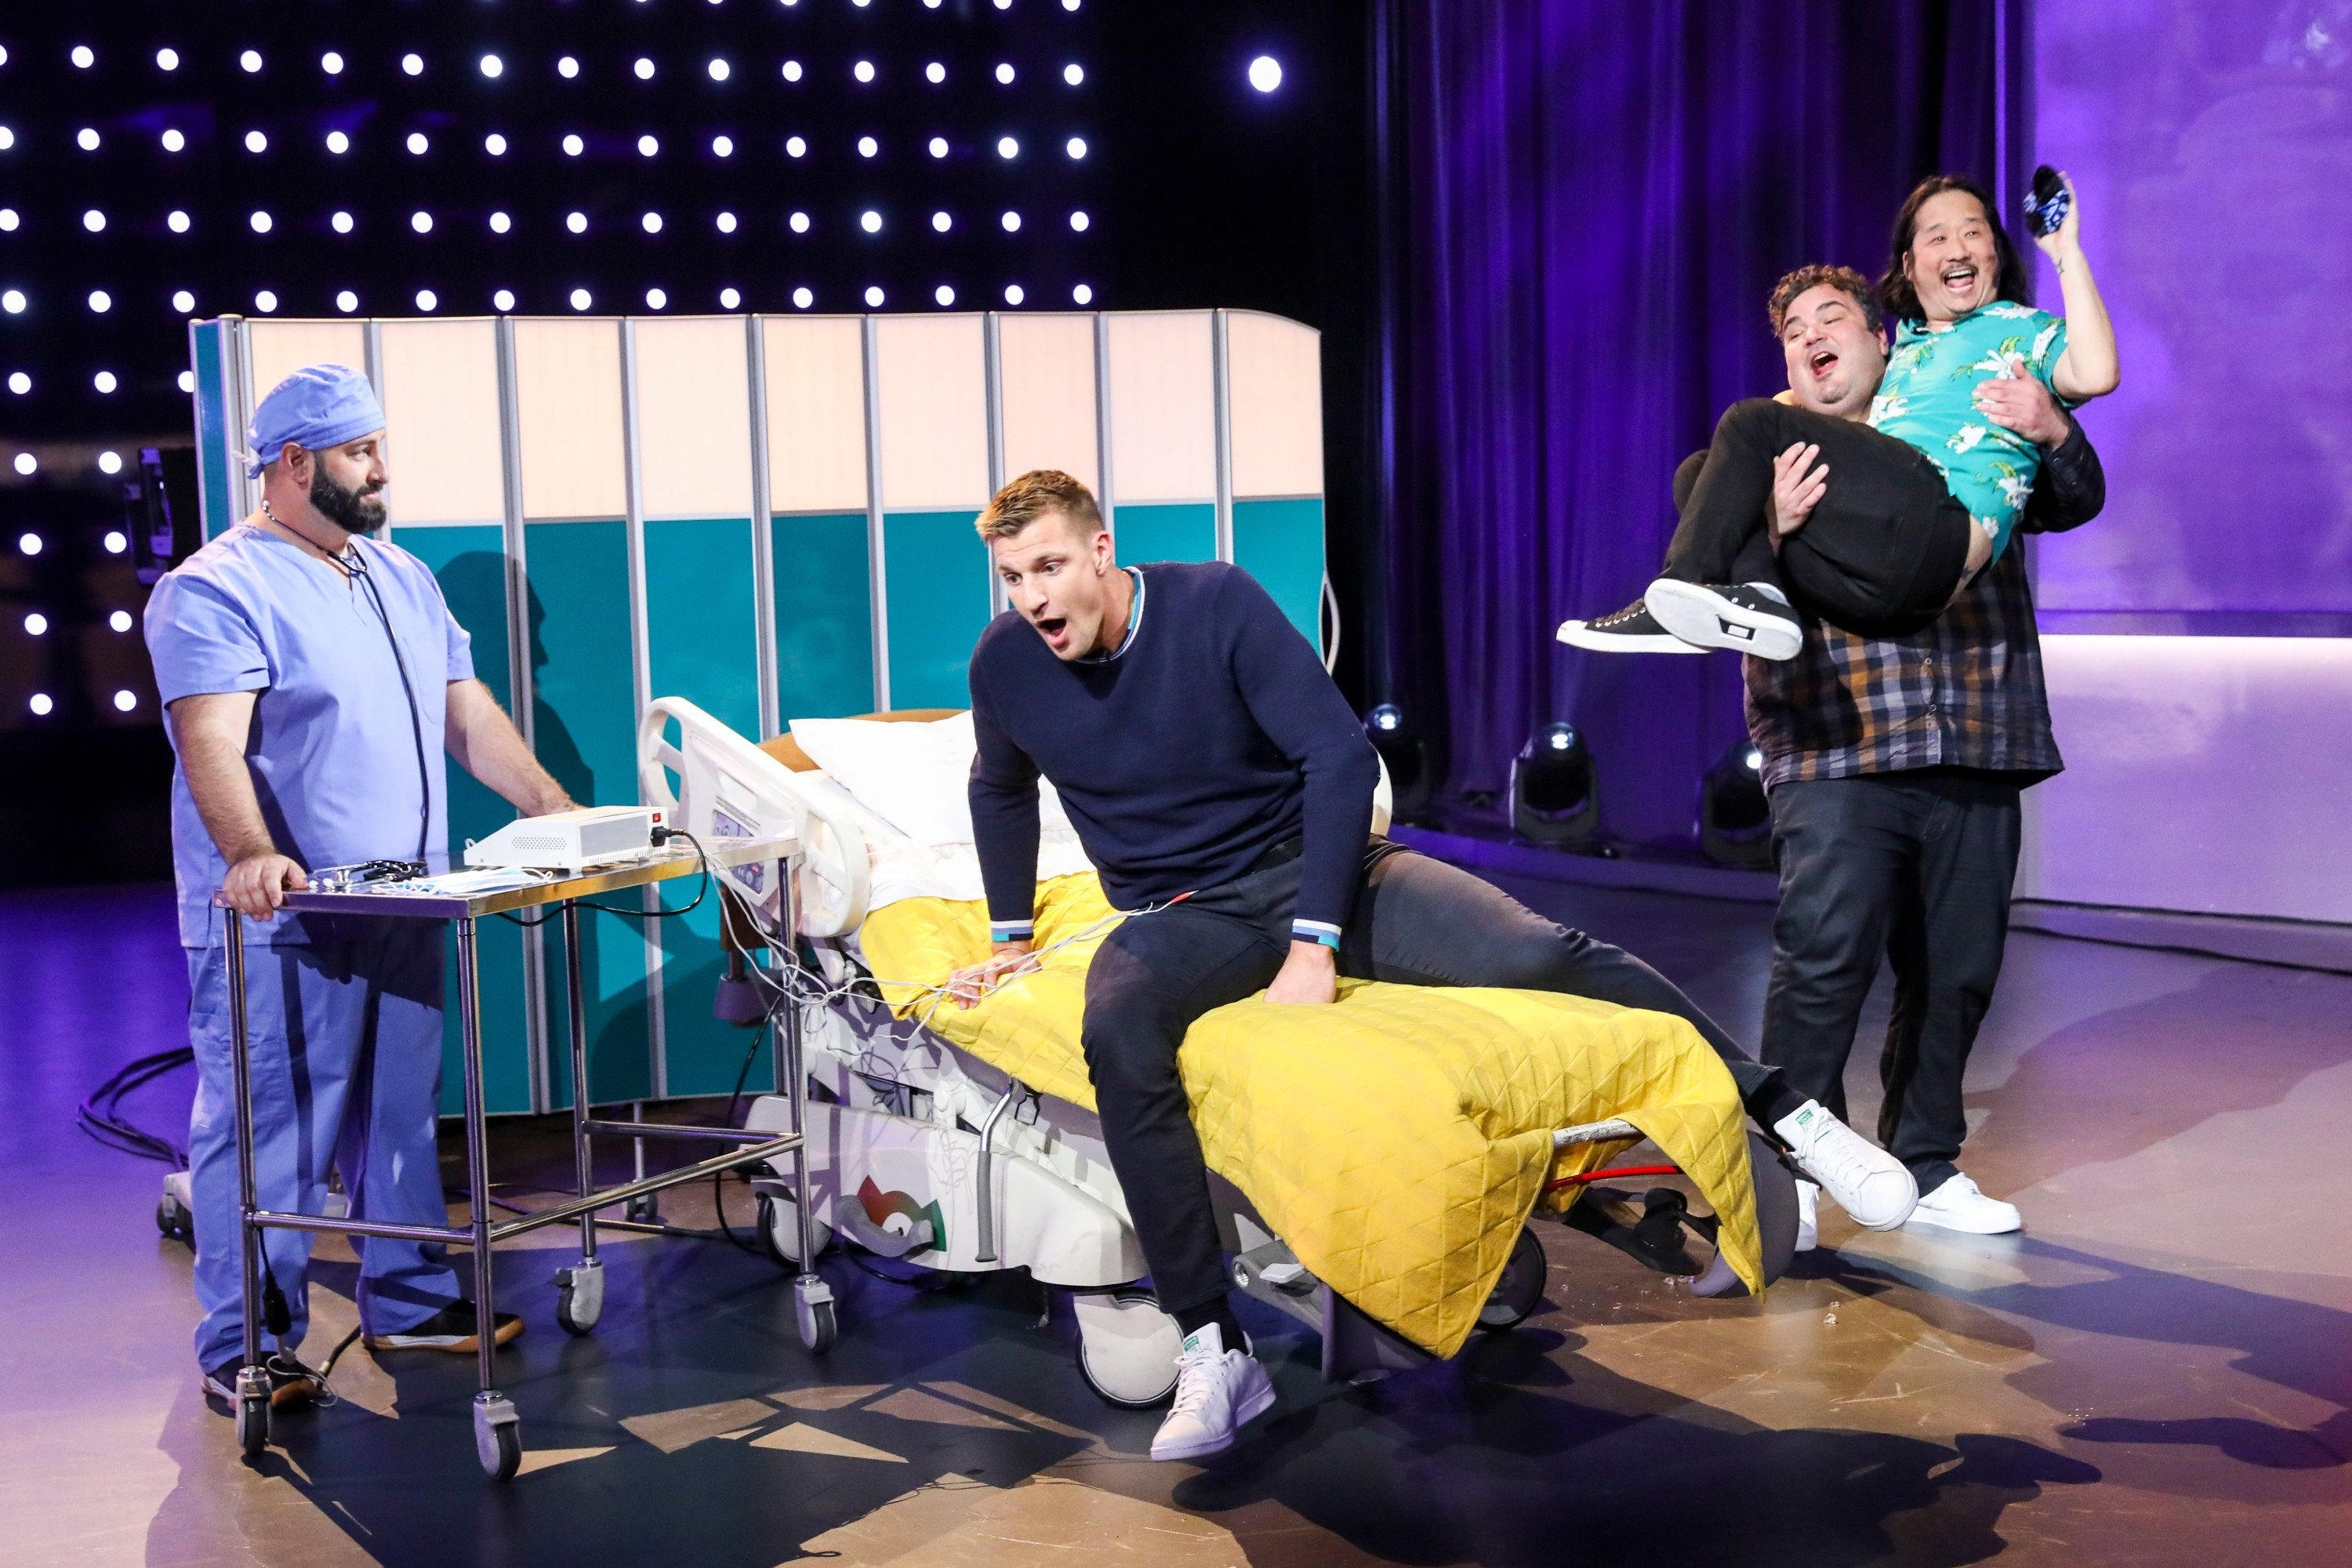 Gronk experiences simulated labor pains with the help of a birthing simulator attached to his abdomen